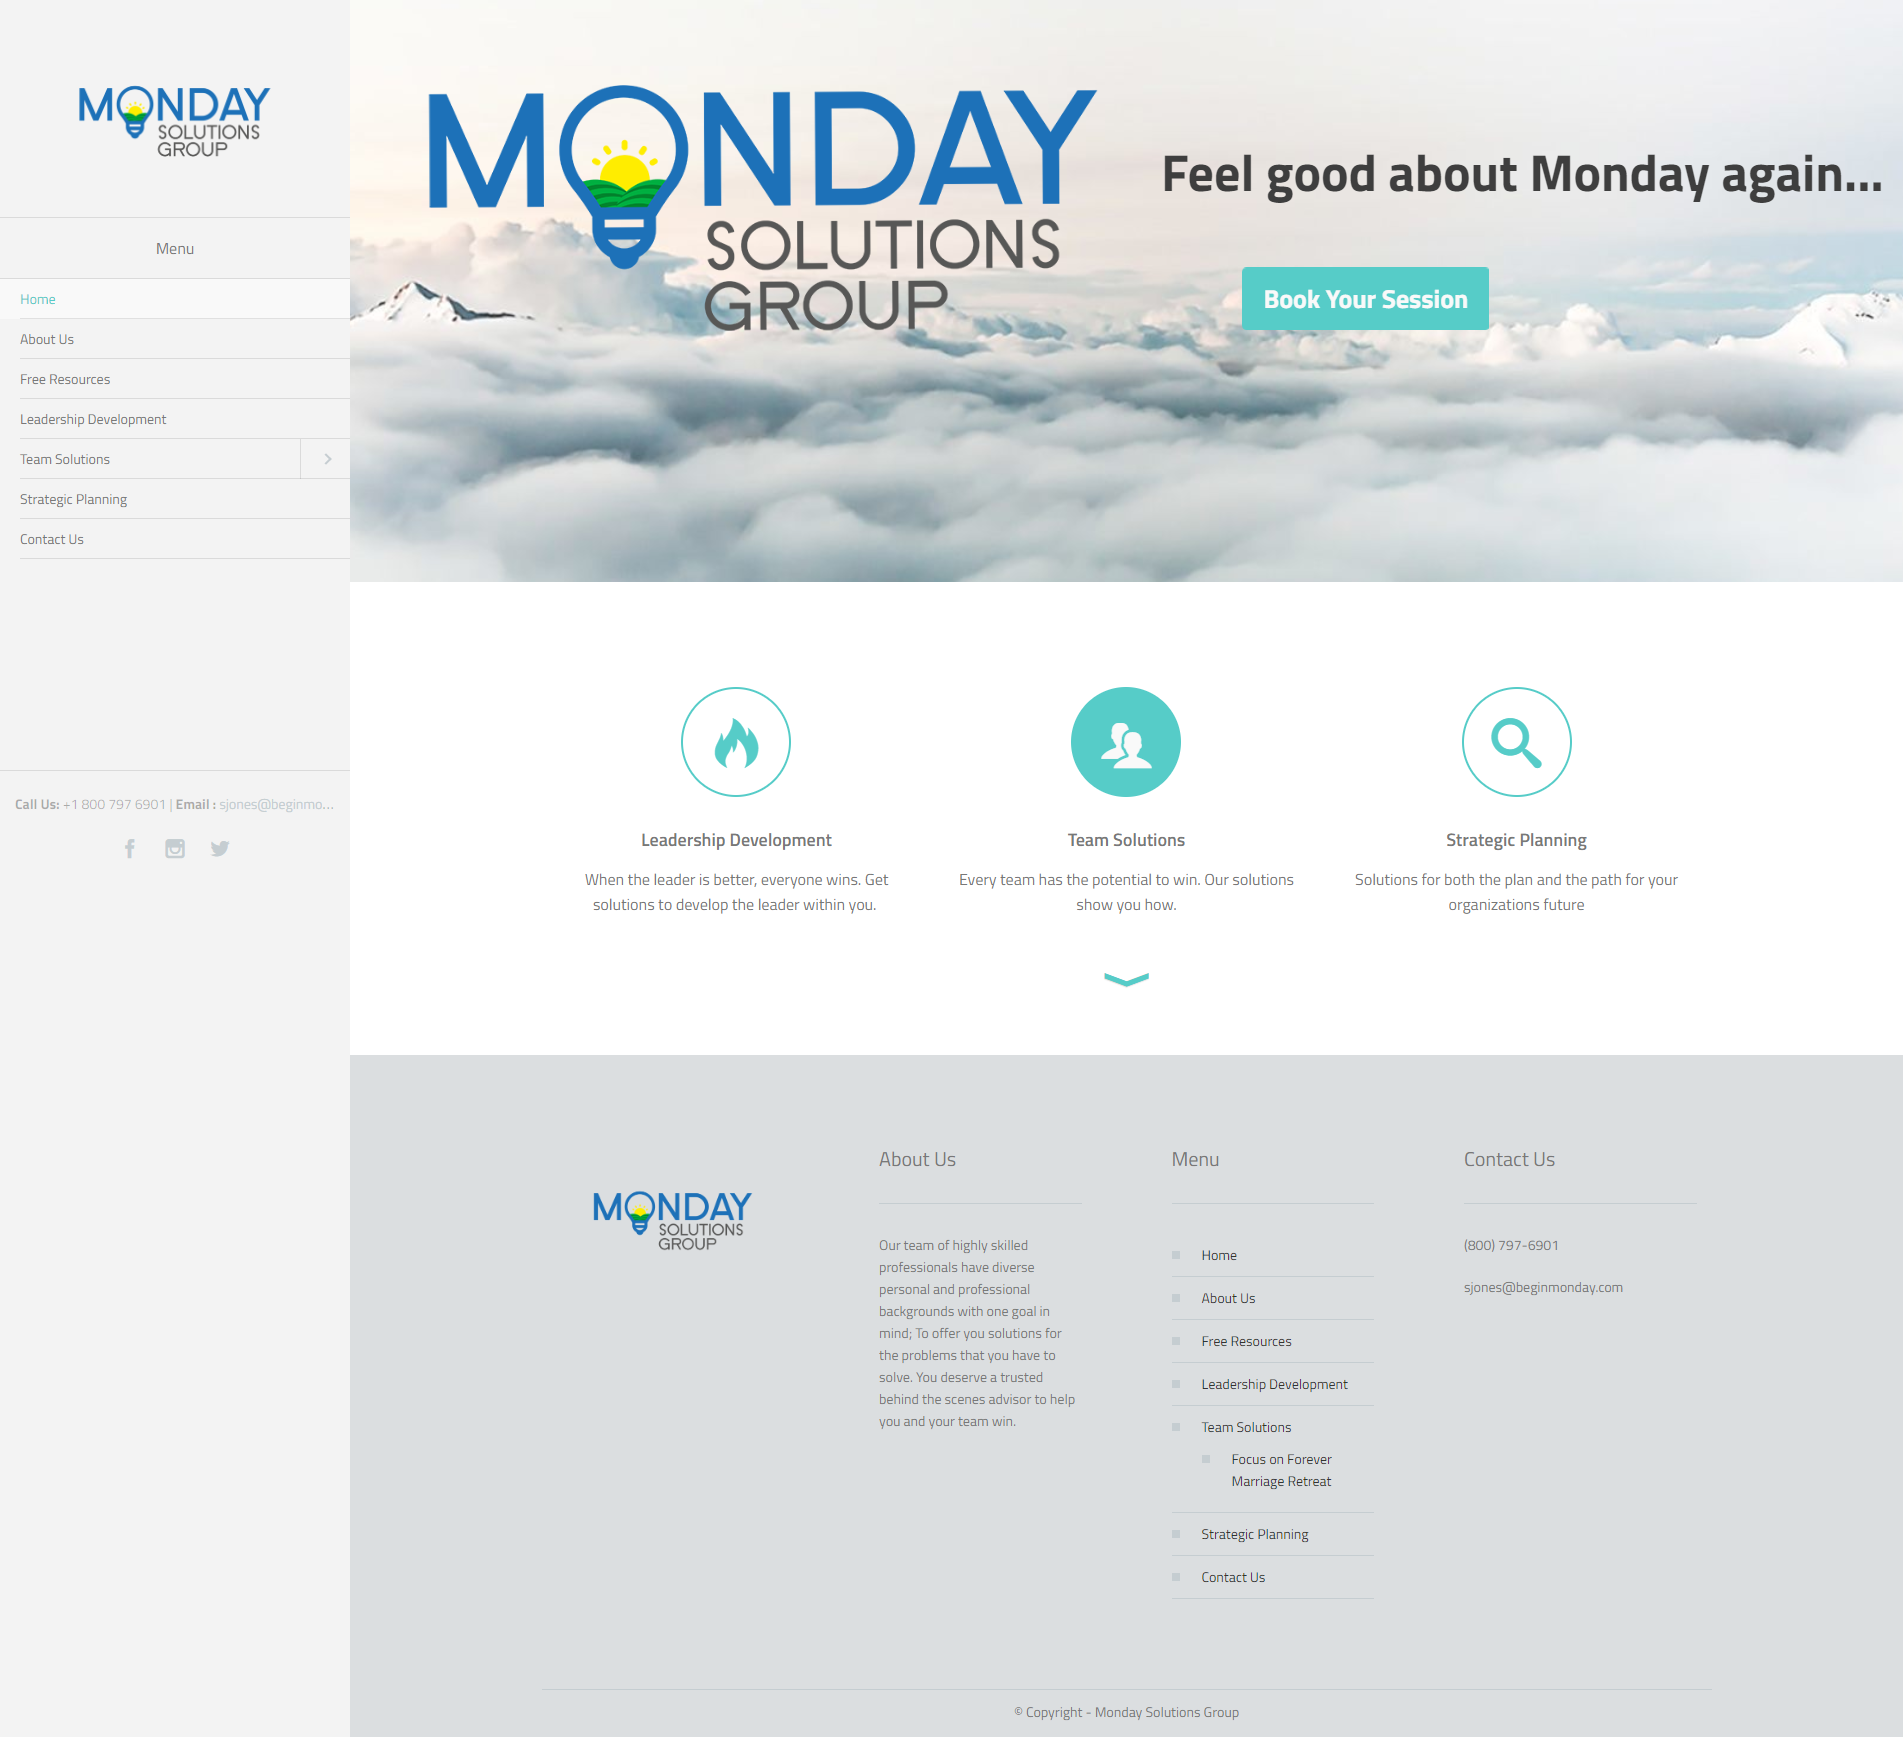 Monday Solutions Group – Feel good about Monday again!